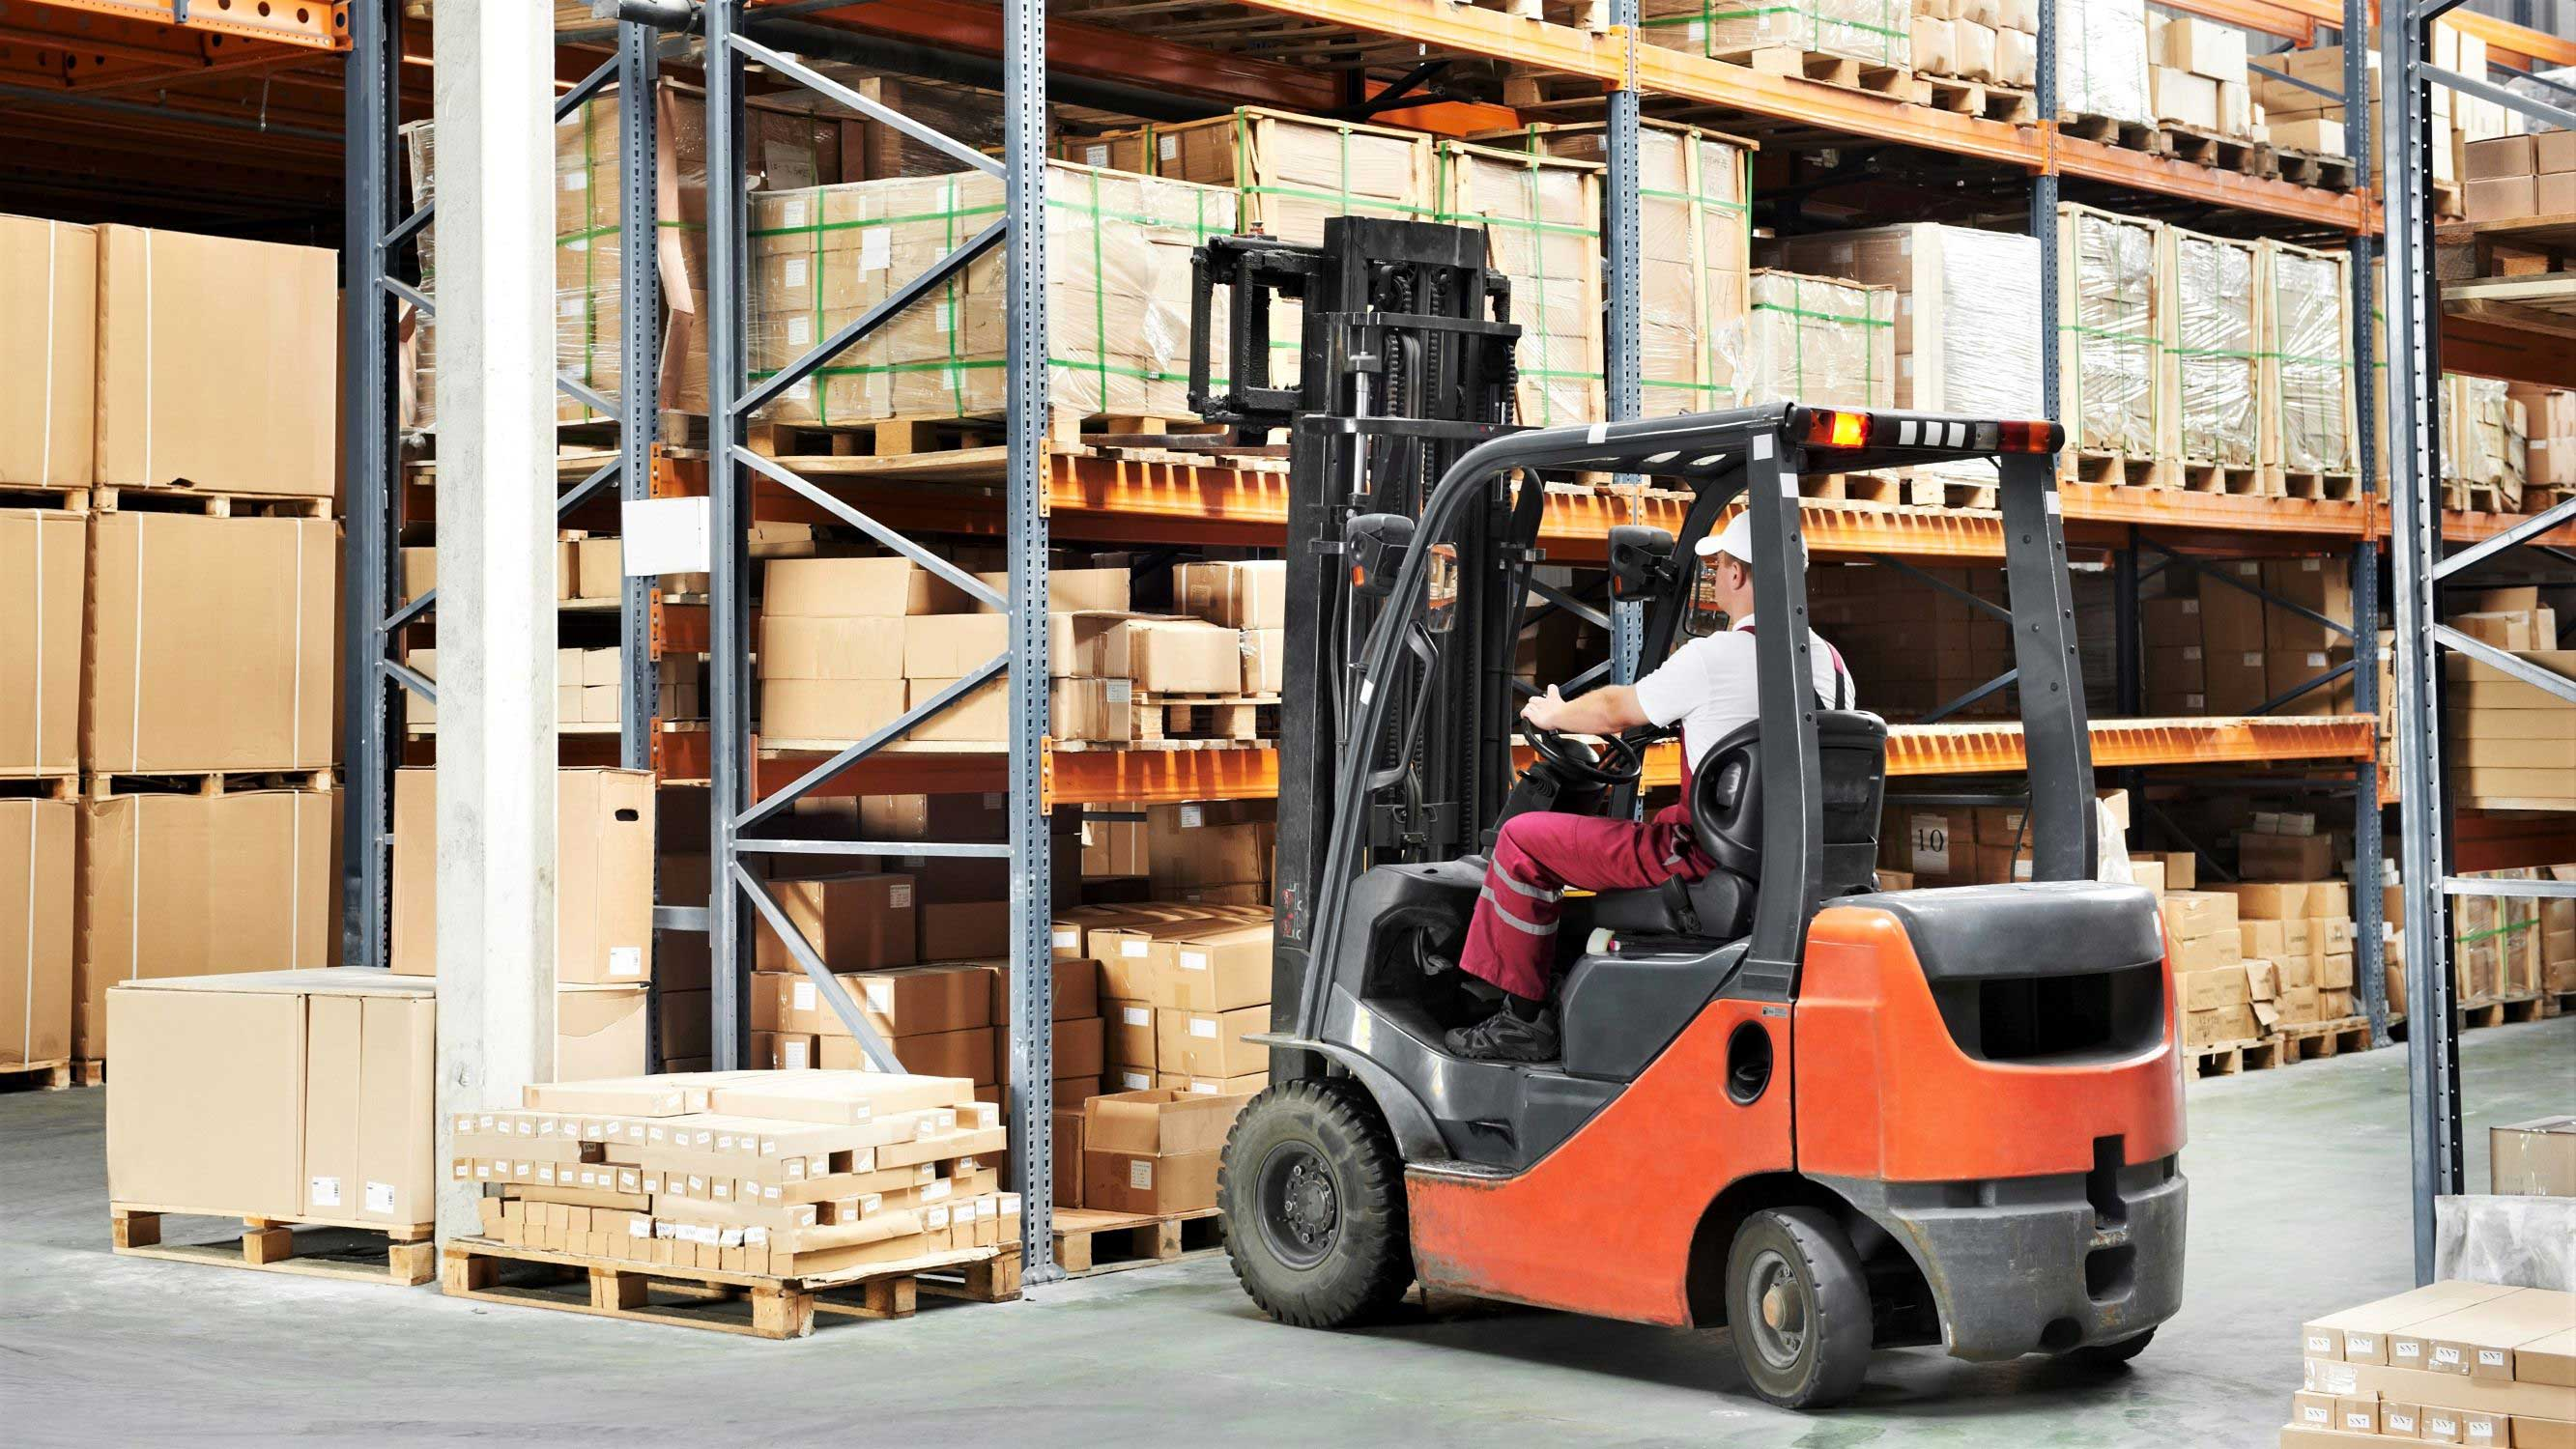 Is a Counterbalance Forklift a Good Fit for My Warehouse?